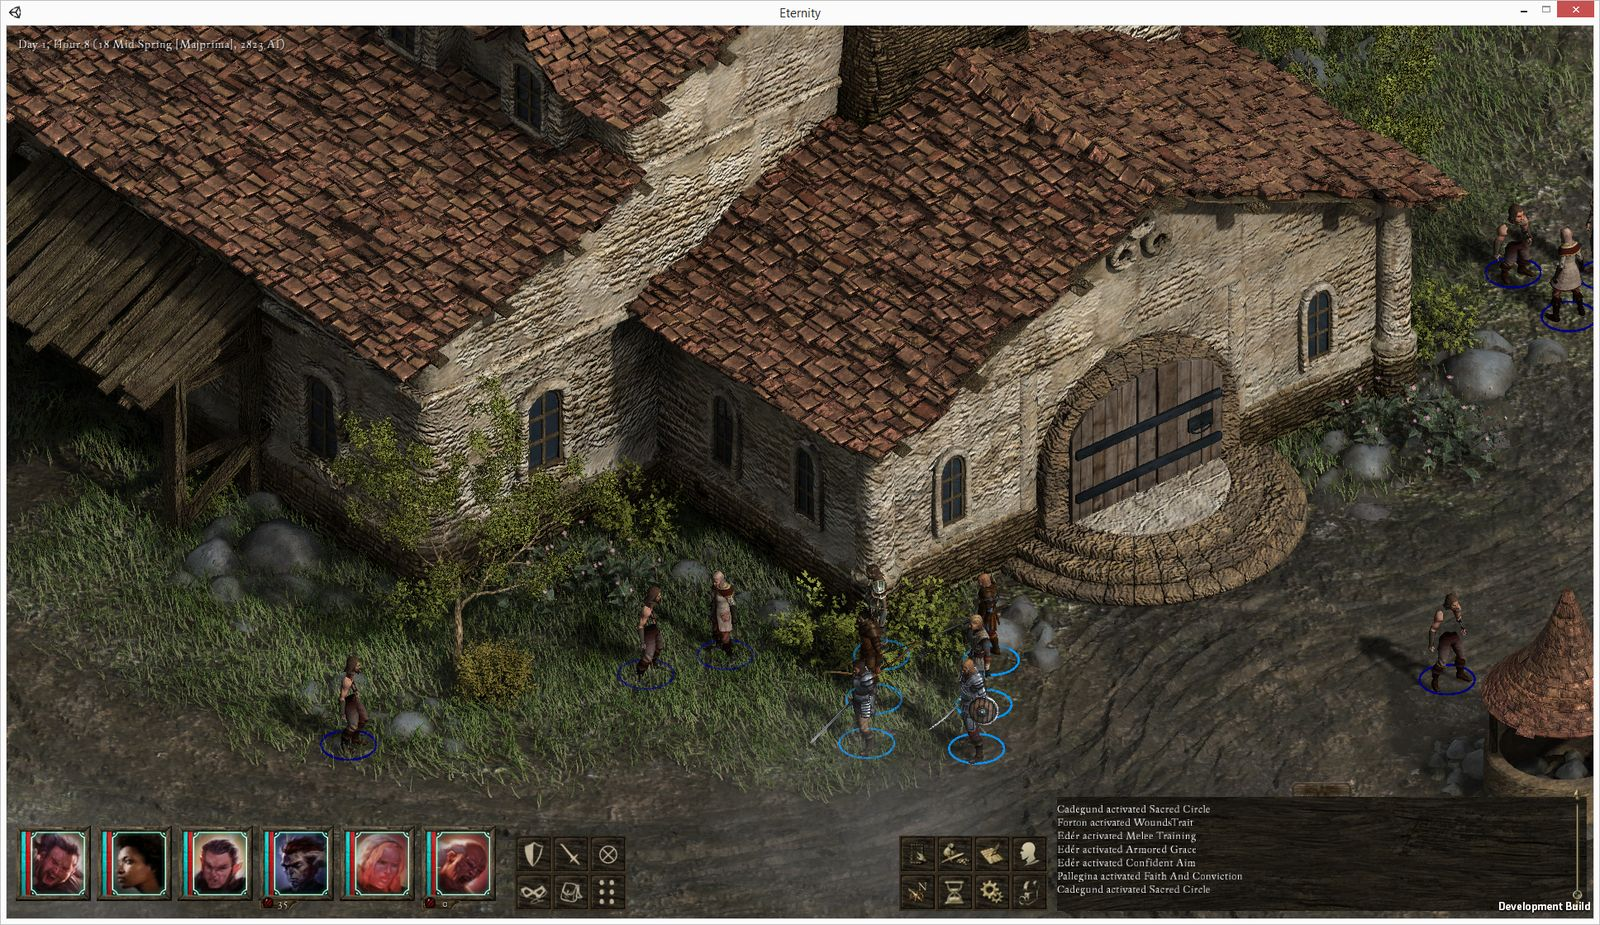 A screenshot from a Pillars of Eternity prototype circa August 2013. (Image courtesy of Obsidian.)